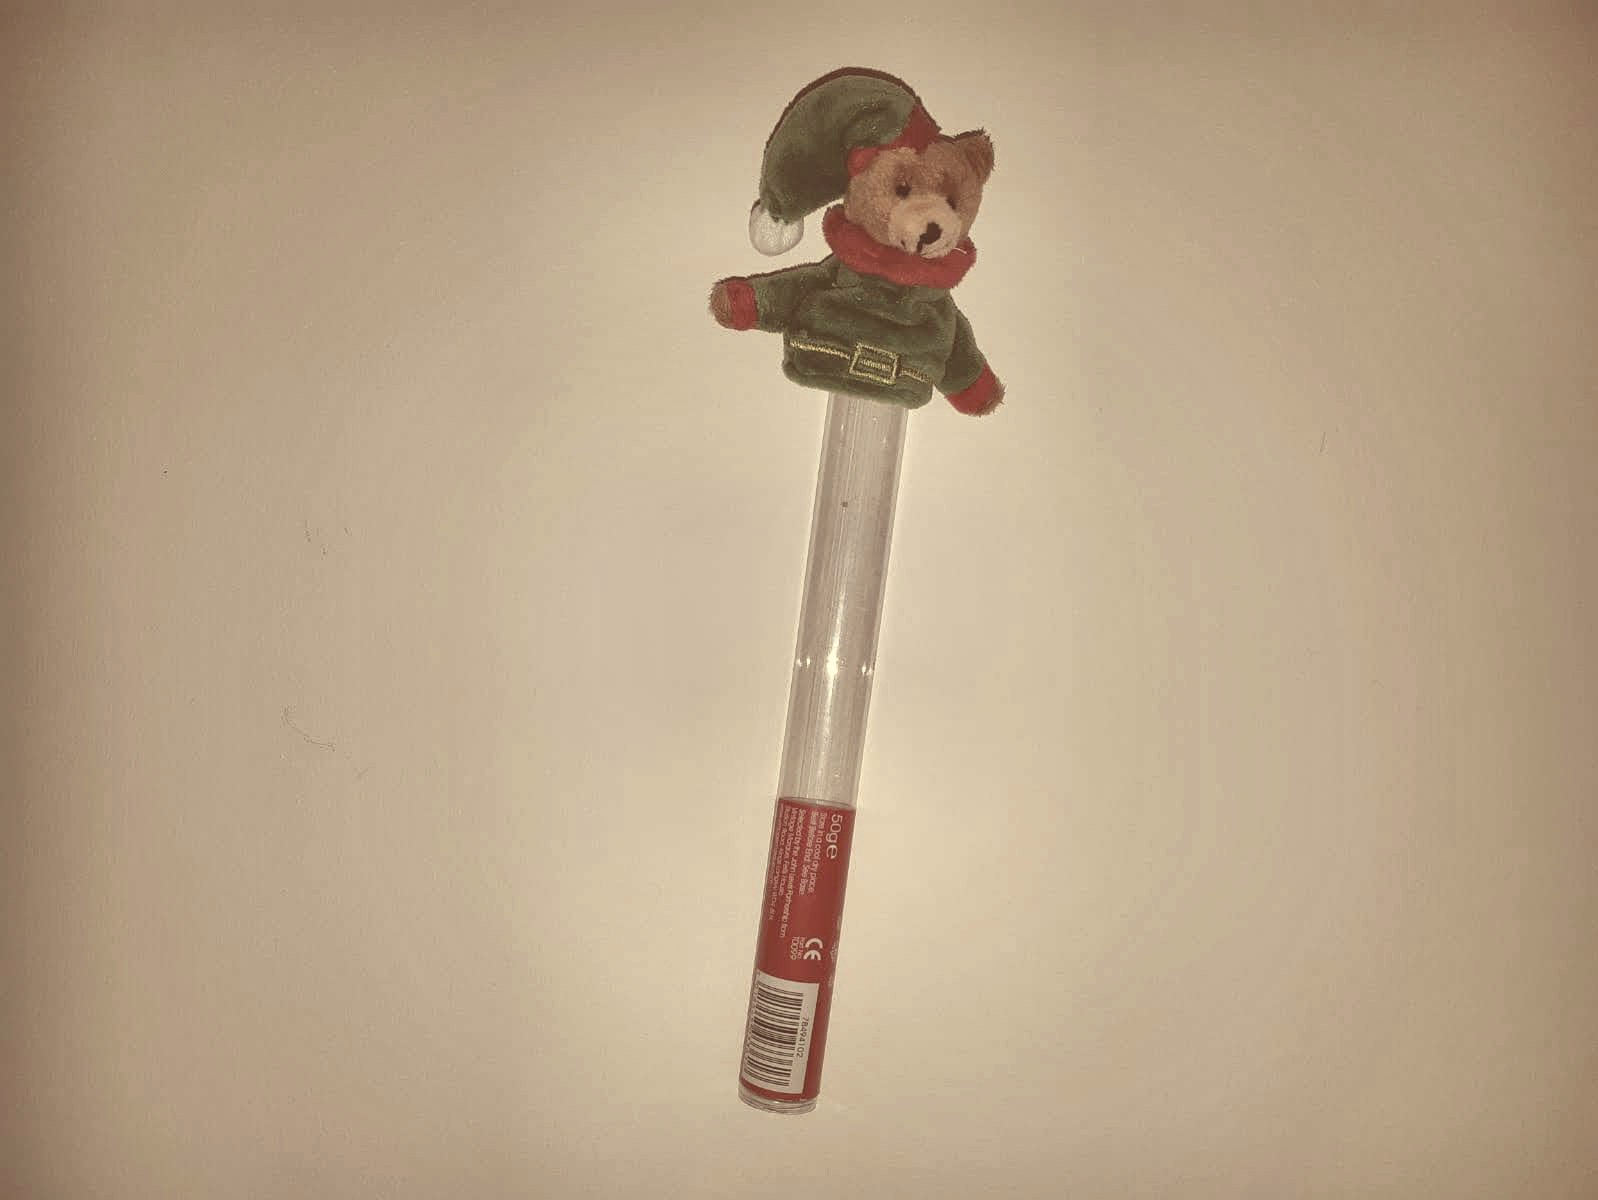 A small toy bear dressed as an elf on top of a plastic tube.